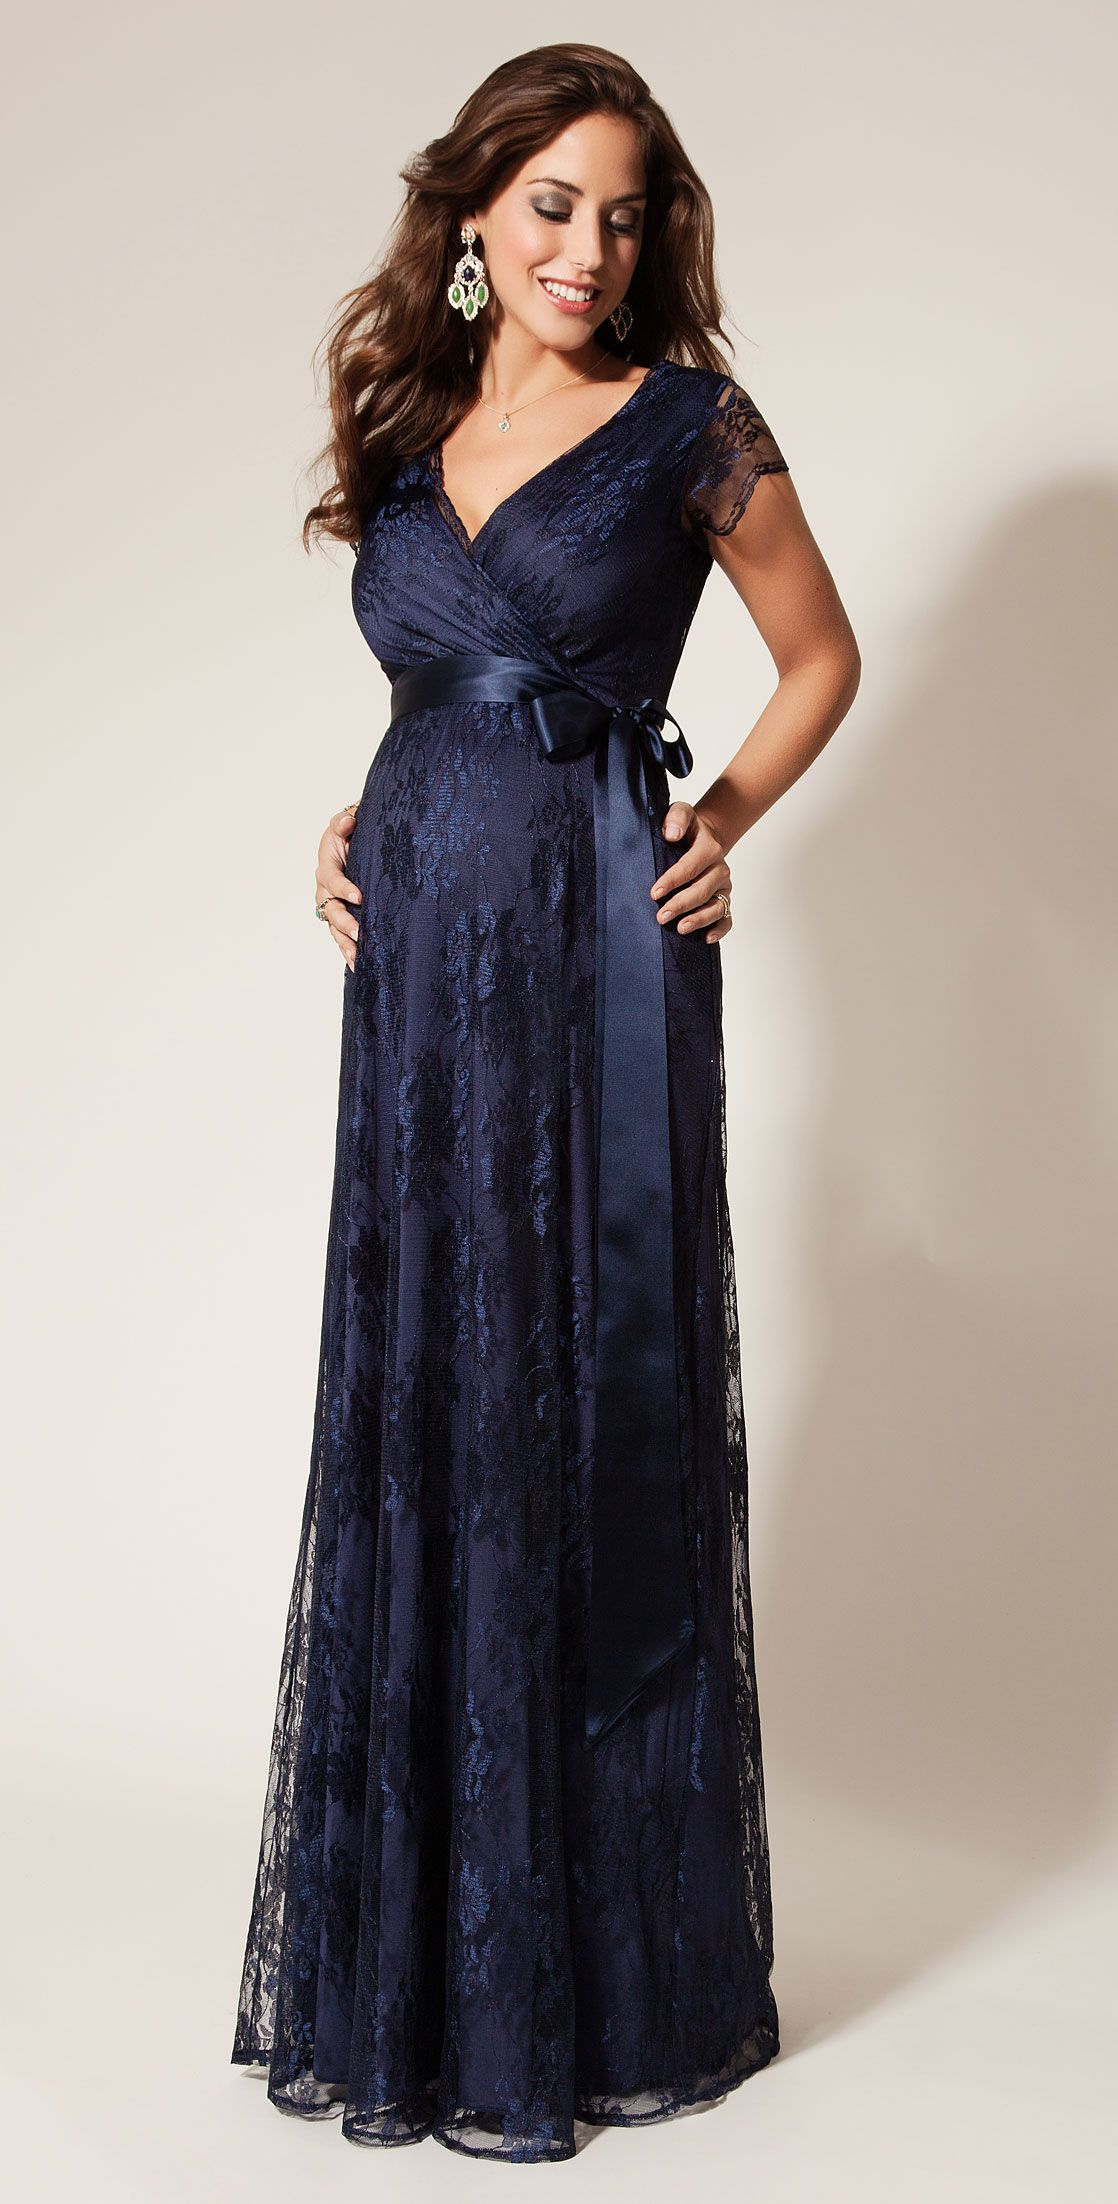 Eden gown long maternity evening gowns wedding and party clothes